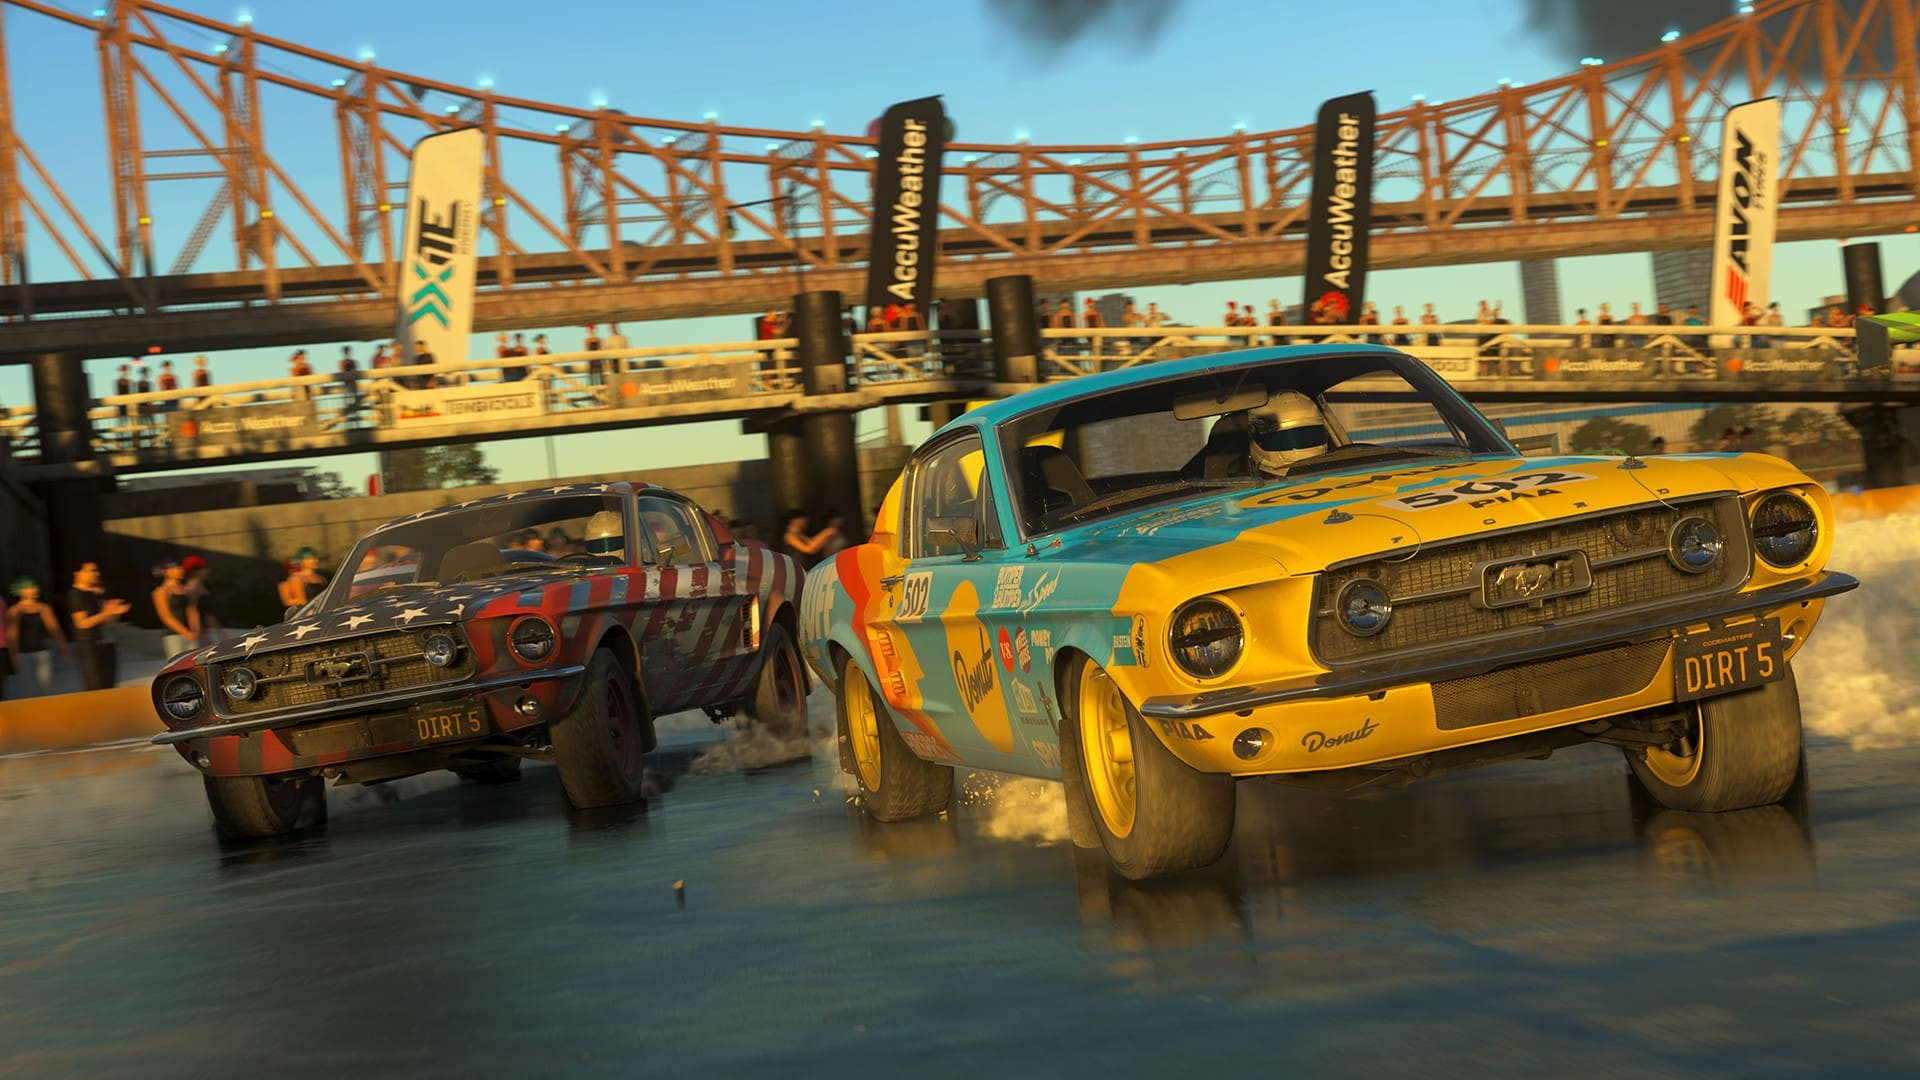 Se confirma el tamaño en disco de Dirt 5 en Xbox One